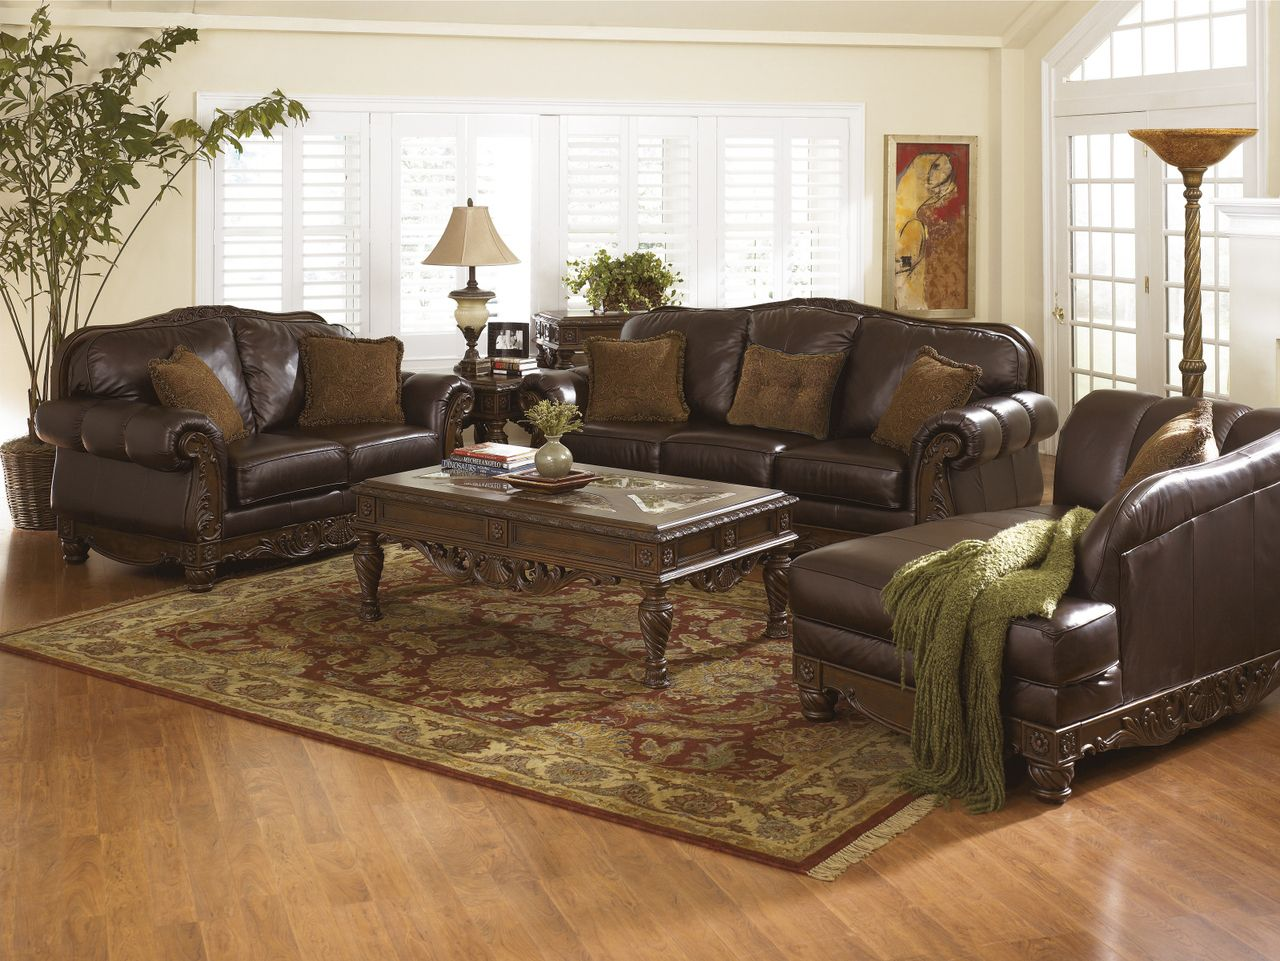 images about Mason Furniture on Pinterest Dining sets